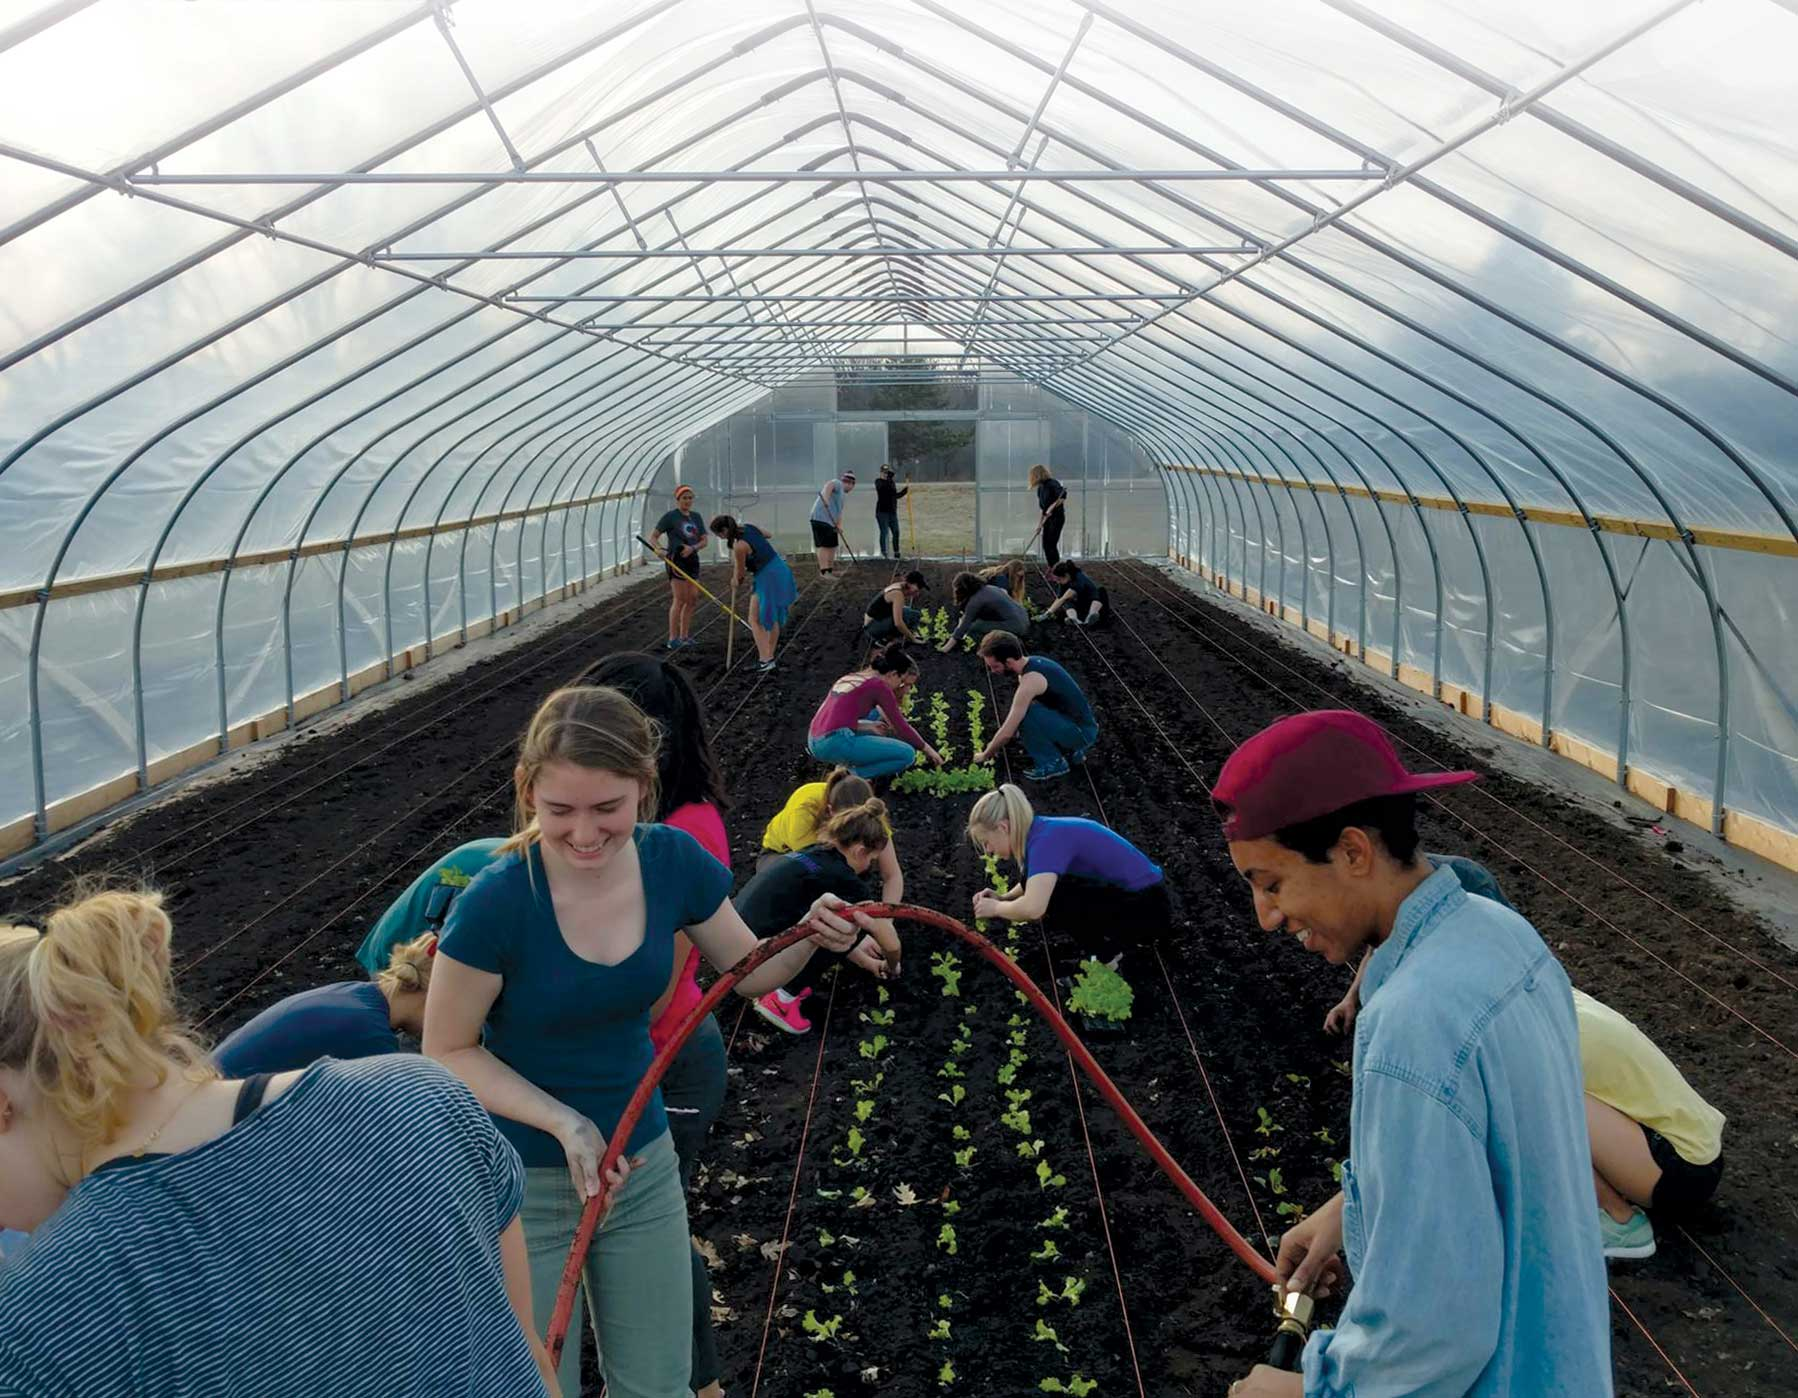 Students plant seedlings in a greenhouse. Image courtesy: Planet Blue